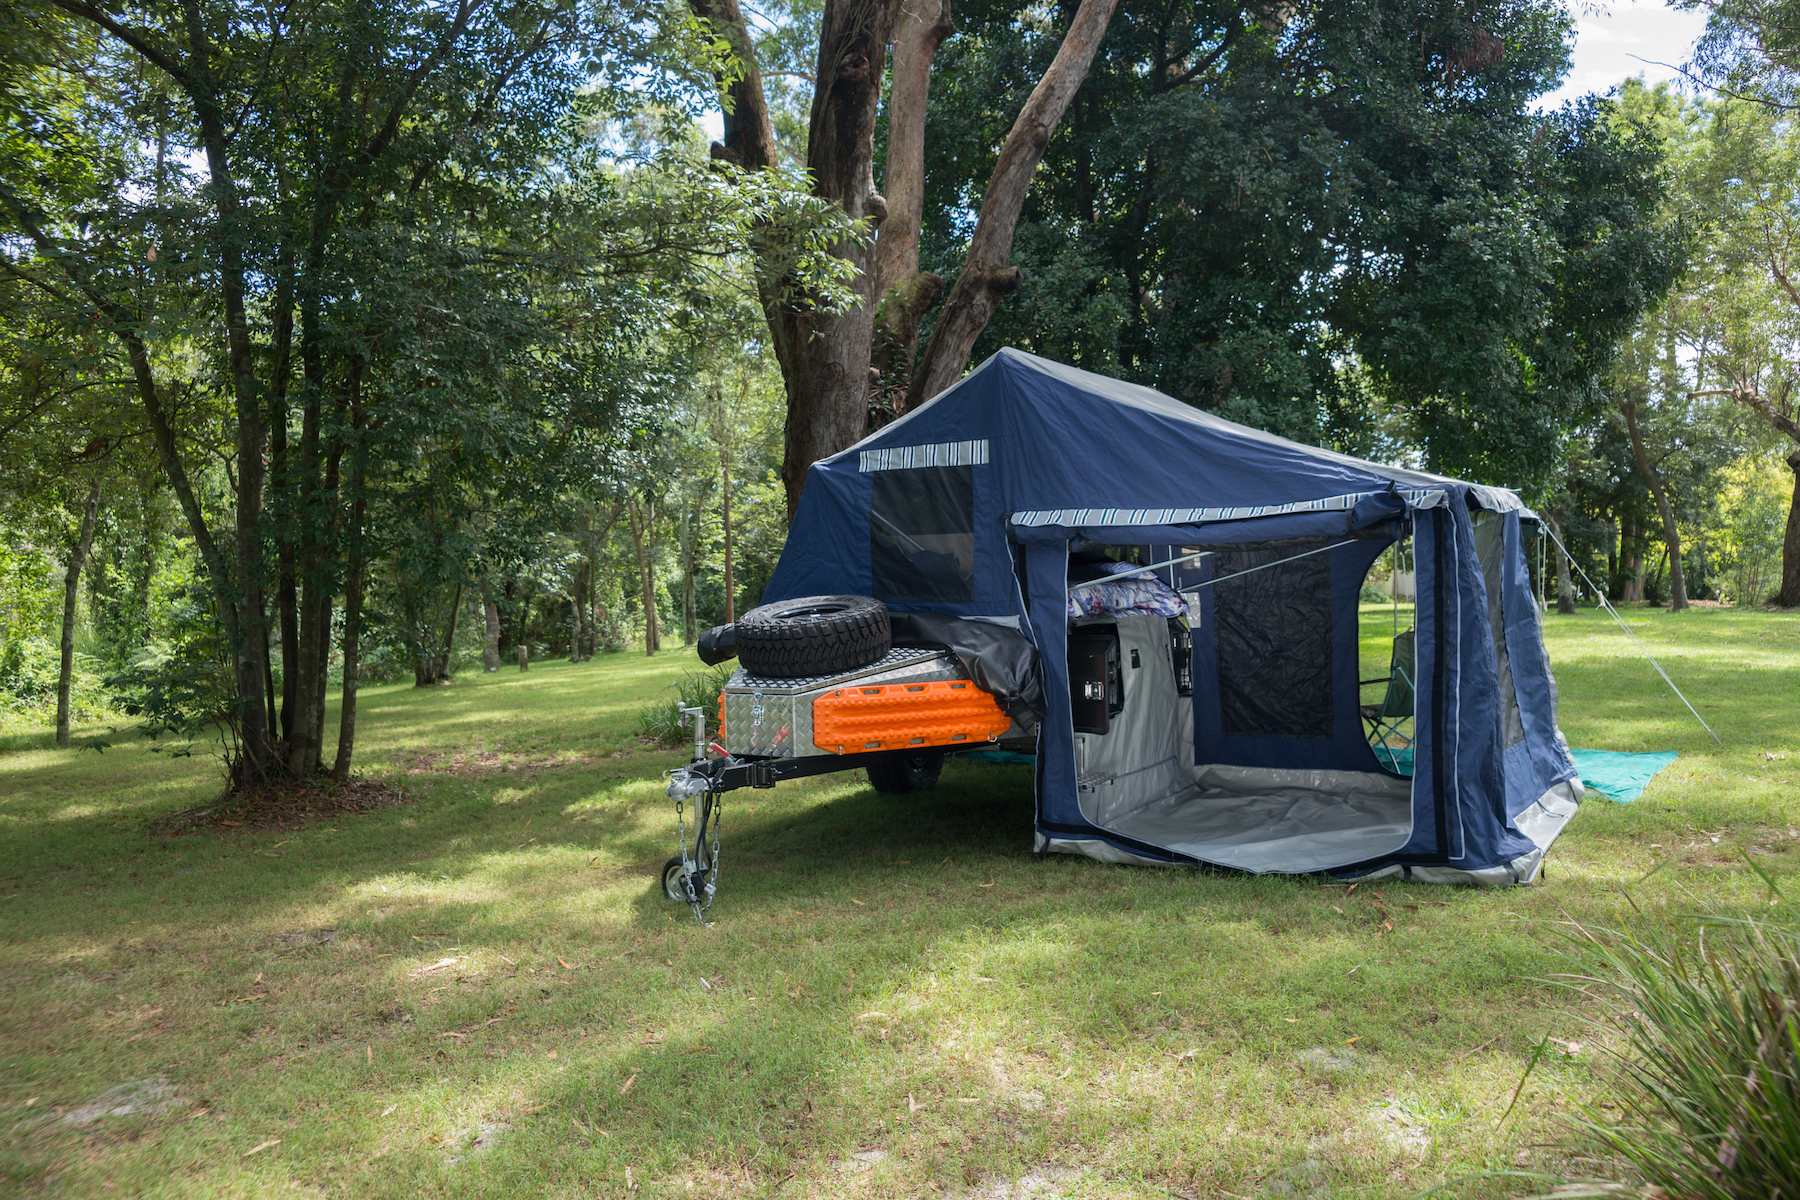 Johnno's X-R15 Camper Trailer Review